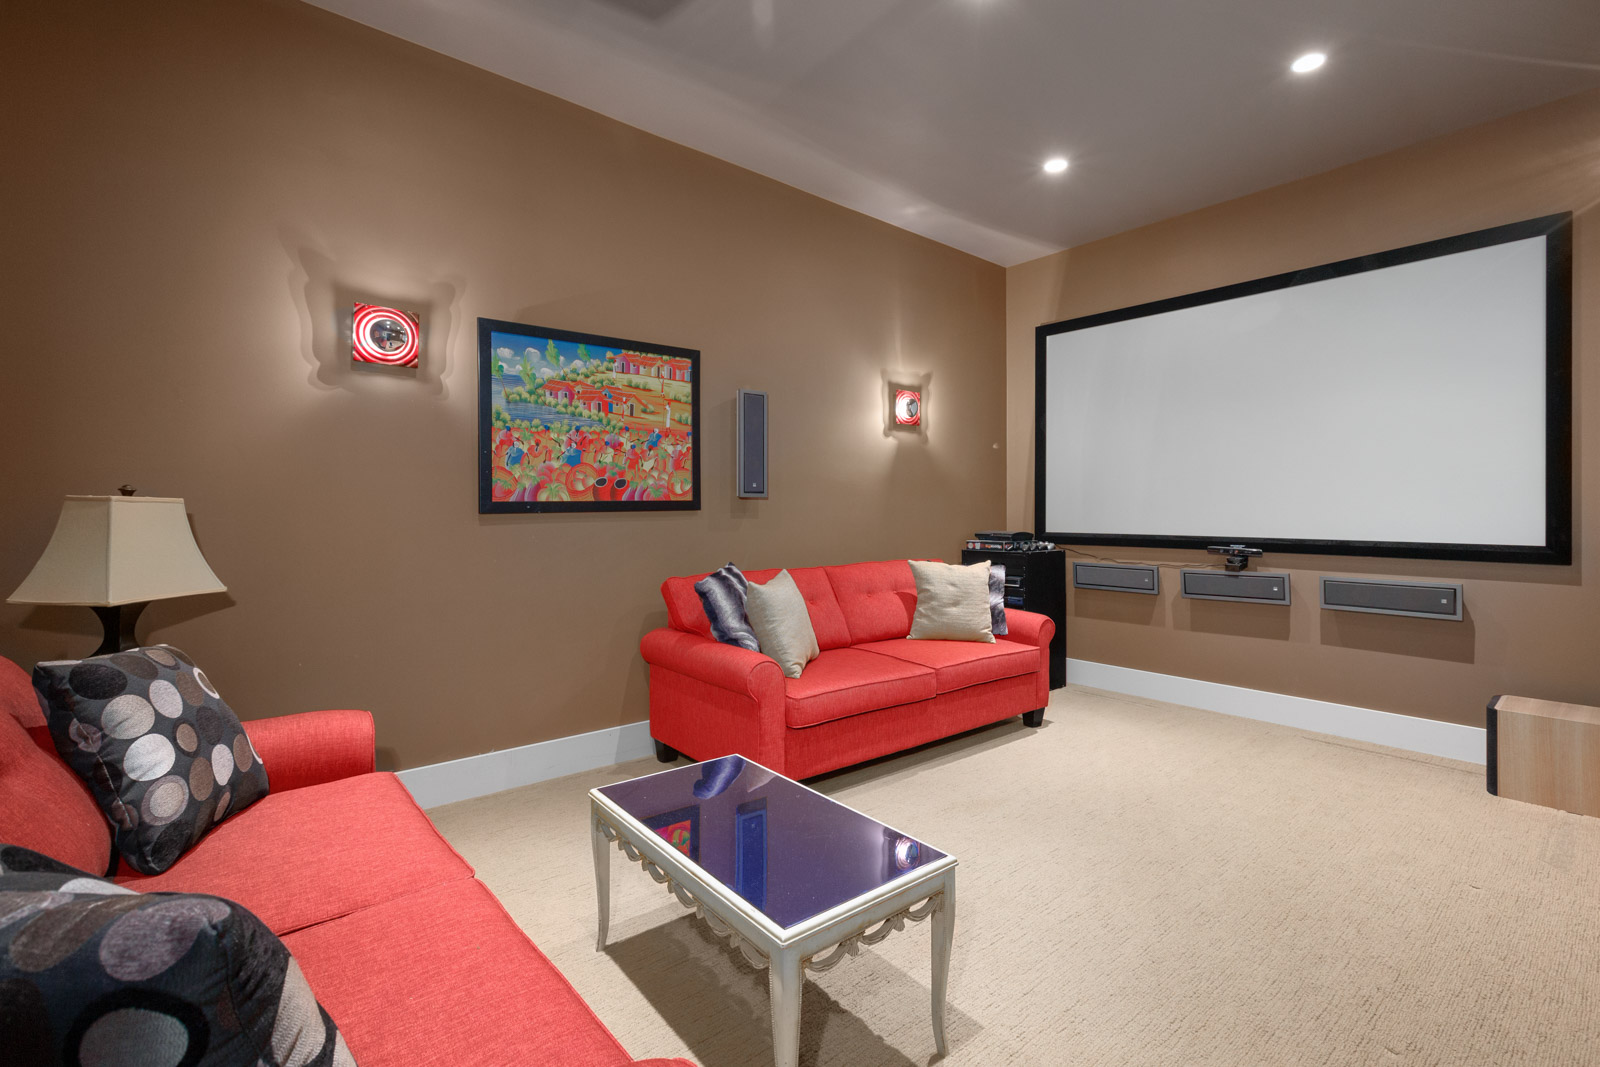 Home theatre with red couches